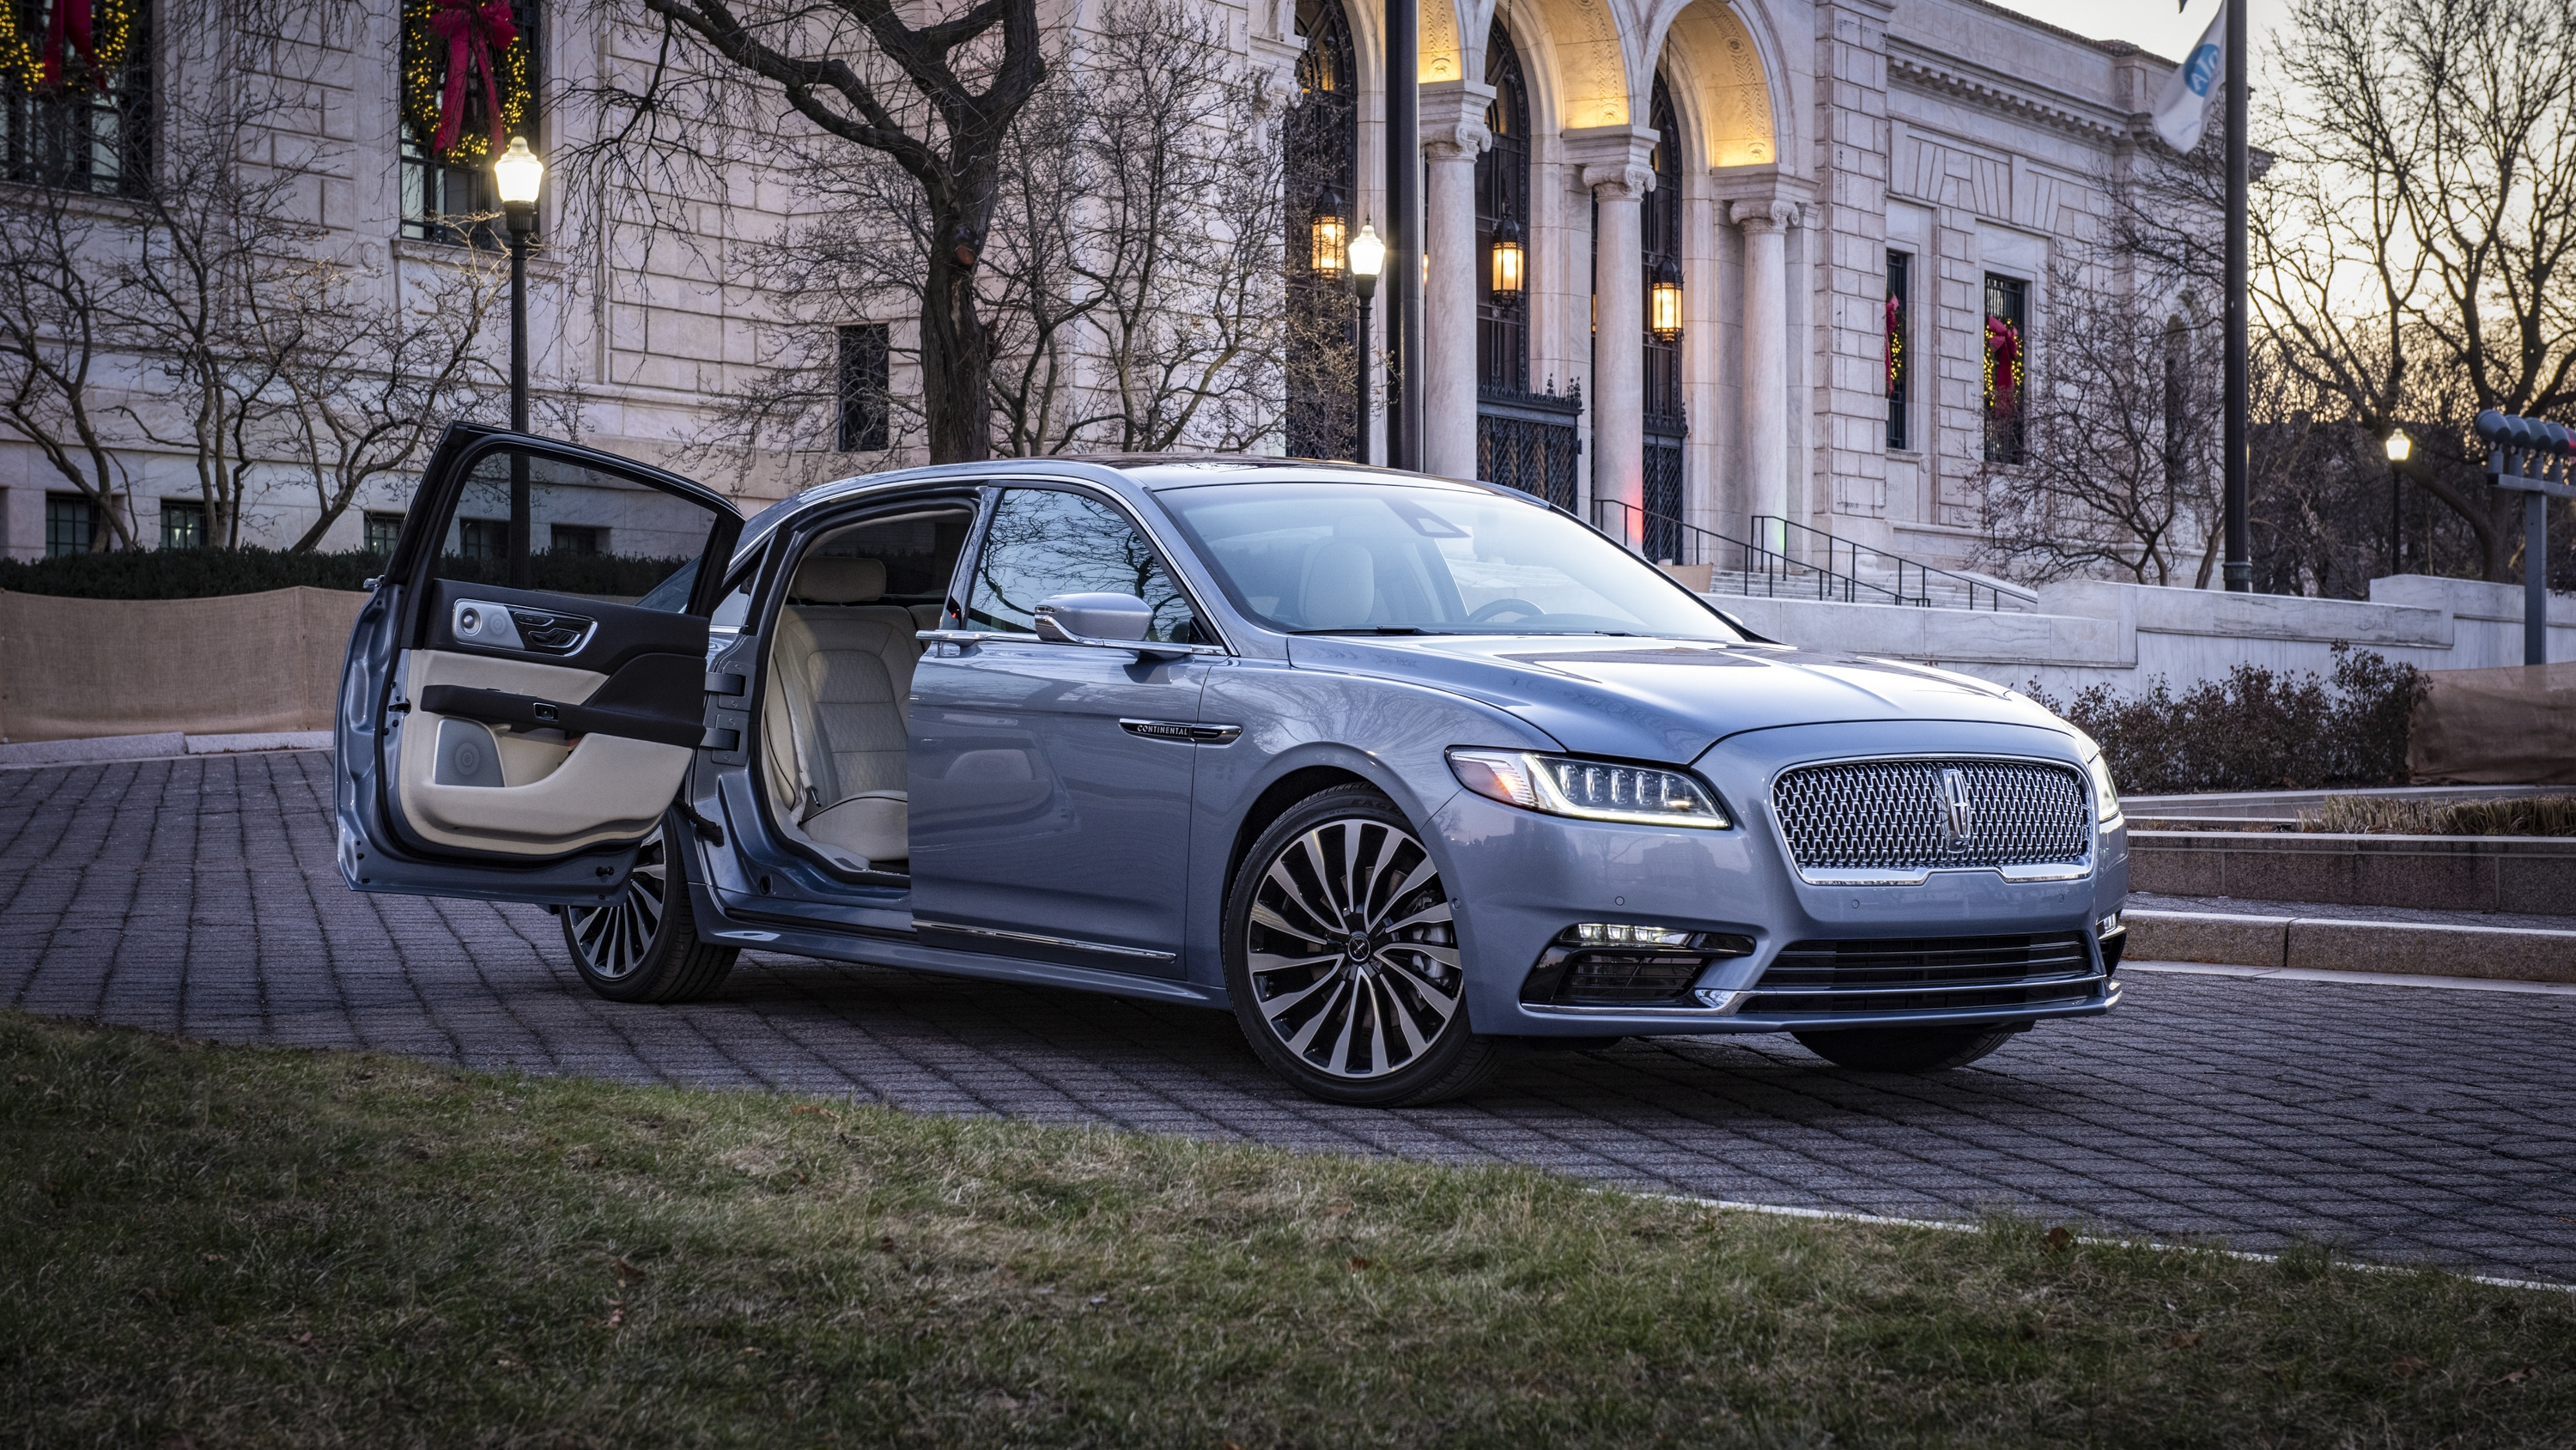 7 Little Know Facts About The 2019 Lincoln Continental Coach Door